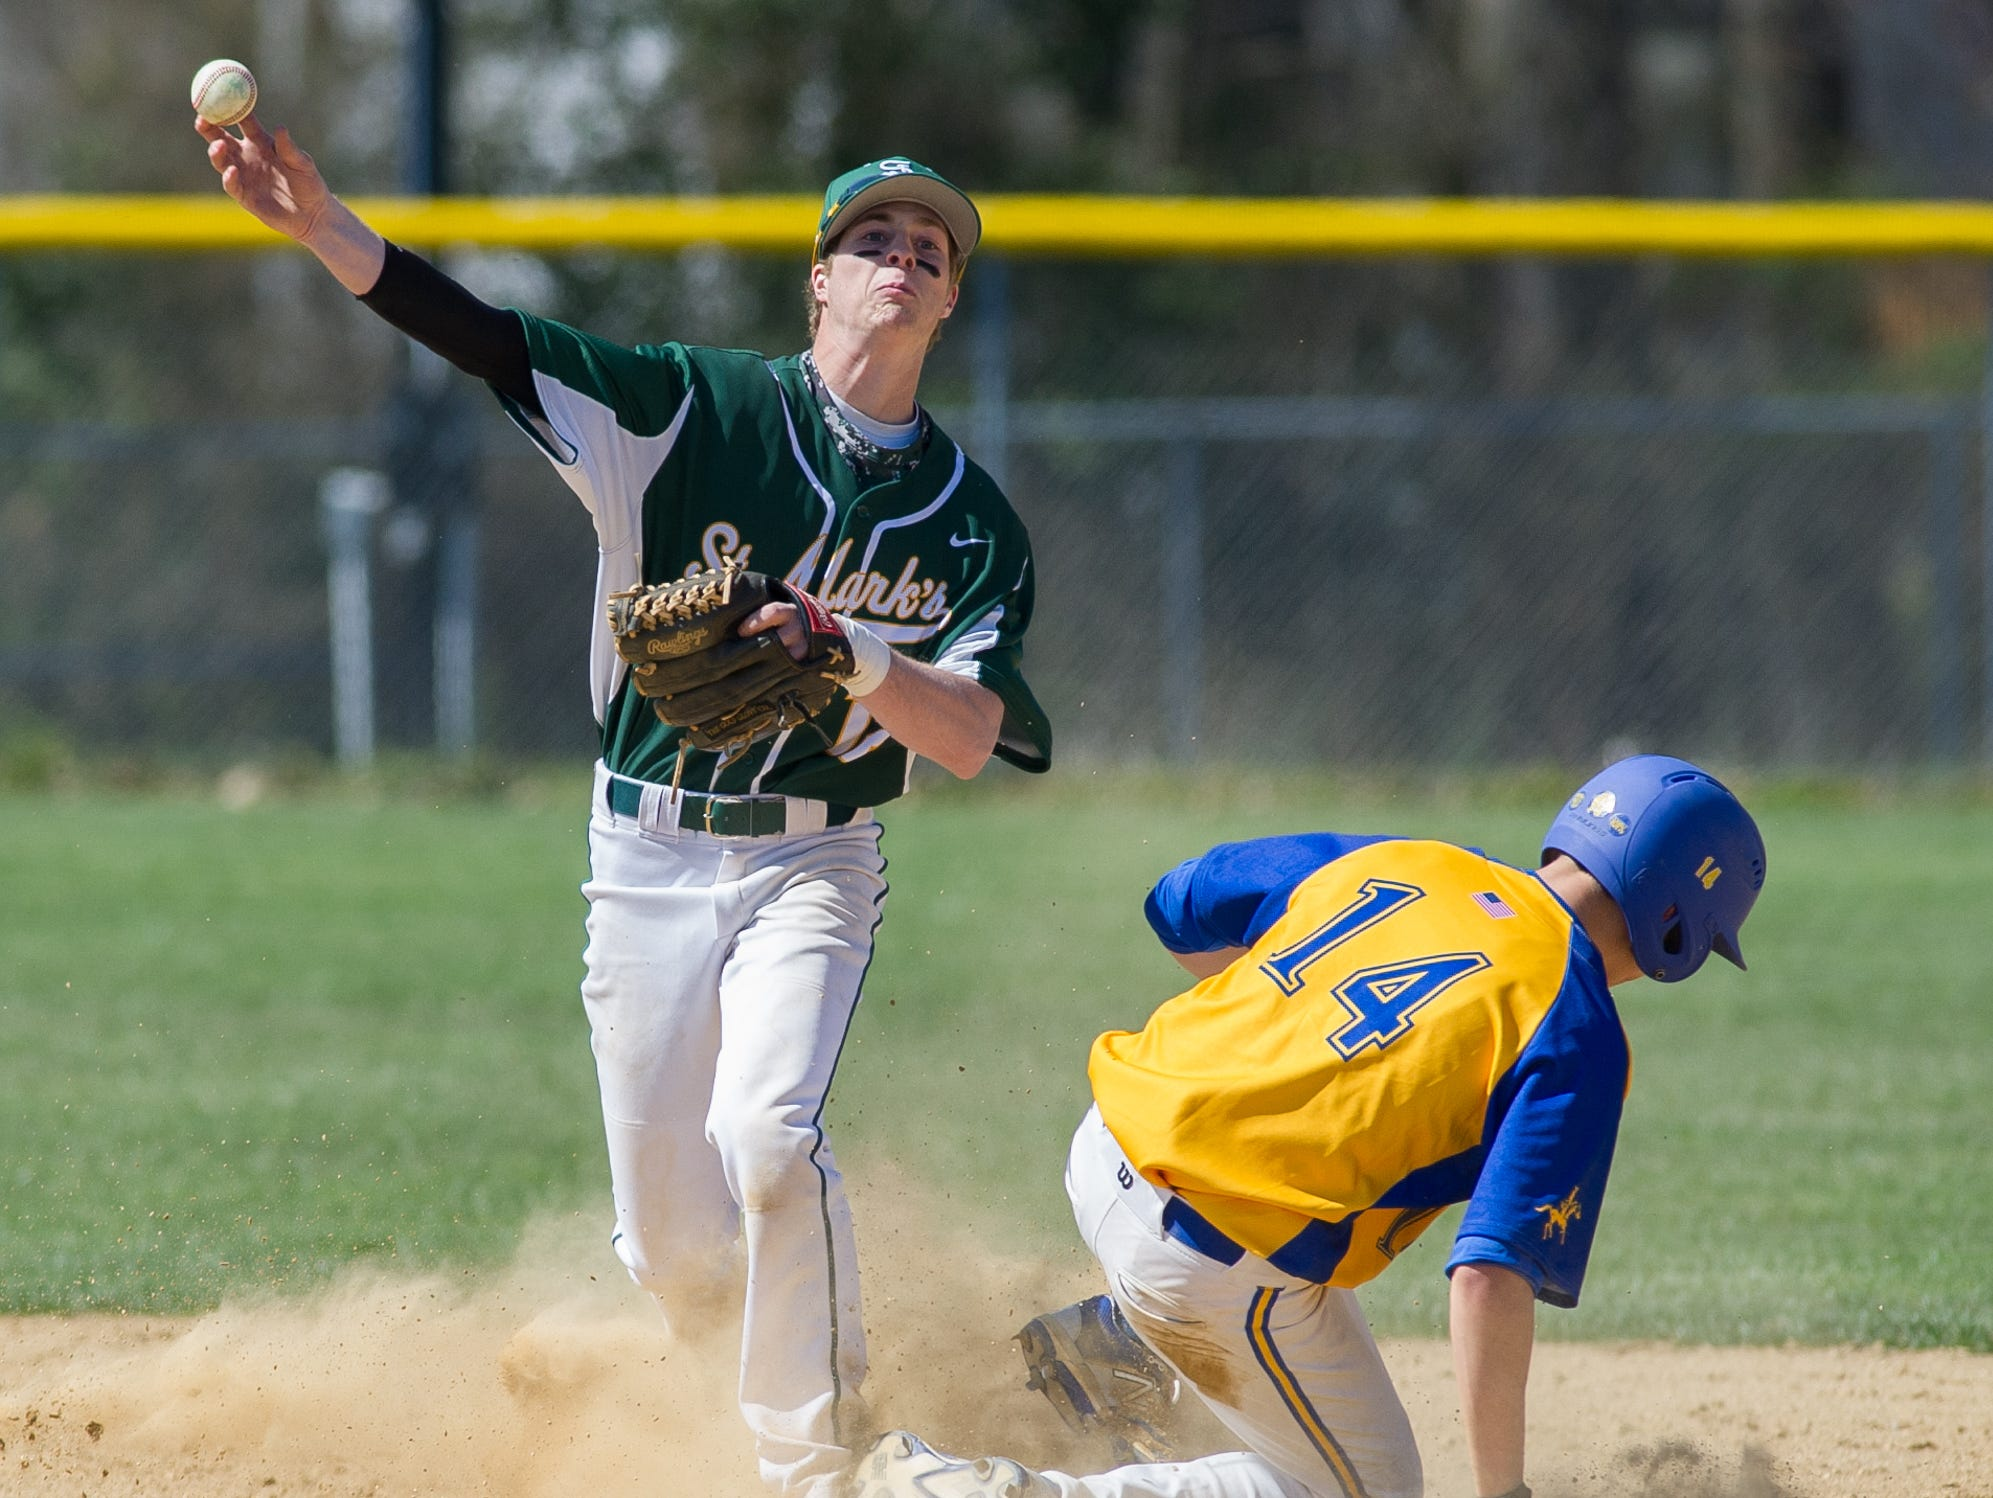 St. Mark's John Panico (12) tags Caesar Rodney's Thomas Pomatto (14) out at second base in the 3rd inning.